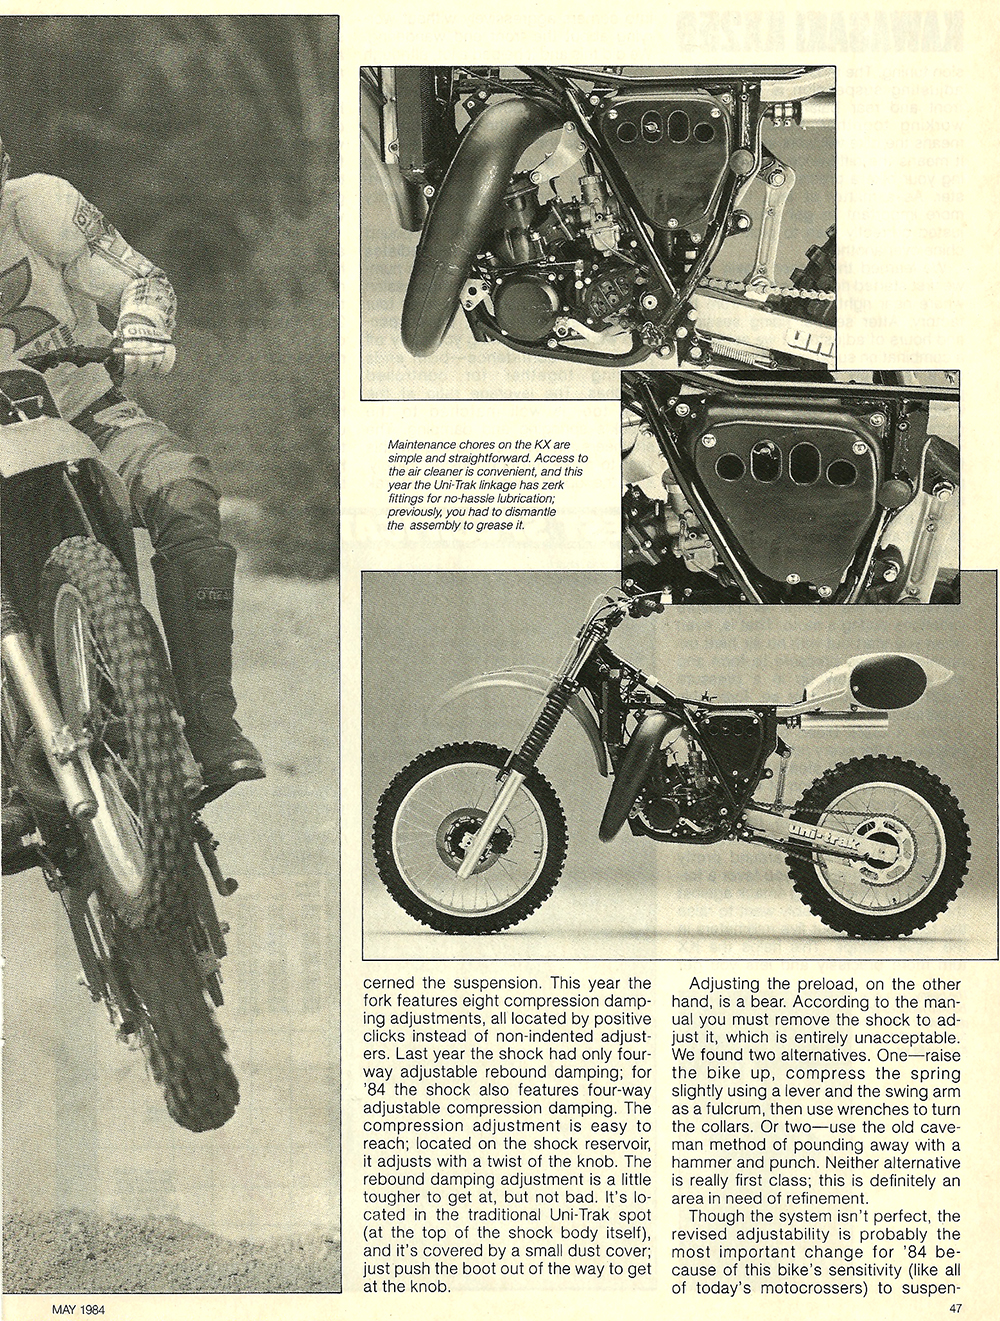 1984 Kawasaki KX250 road test 6.jpg